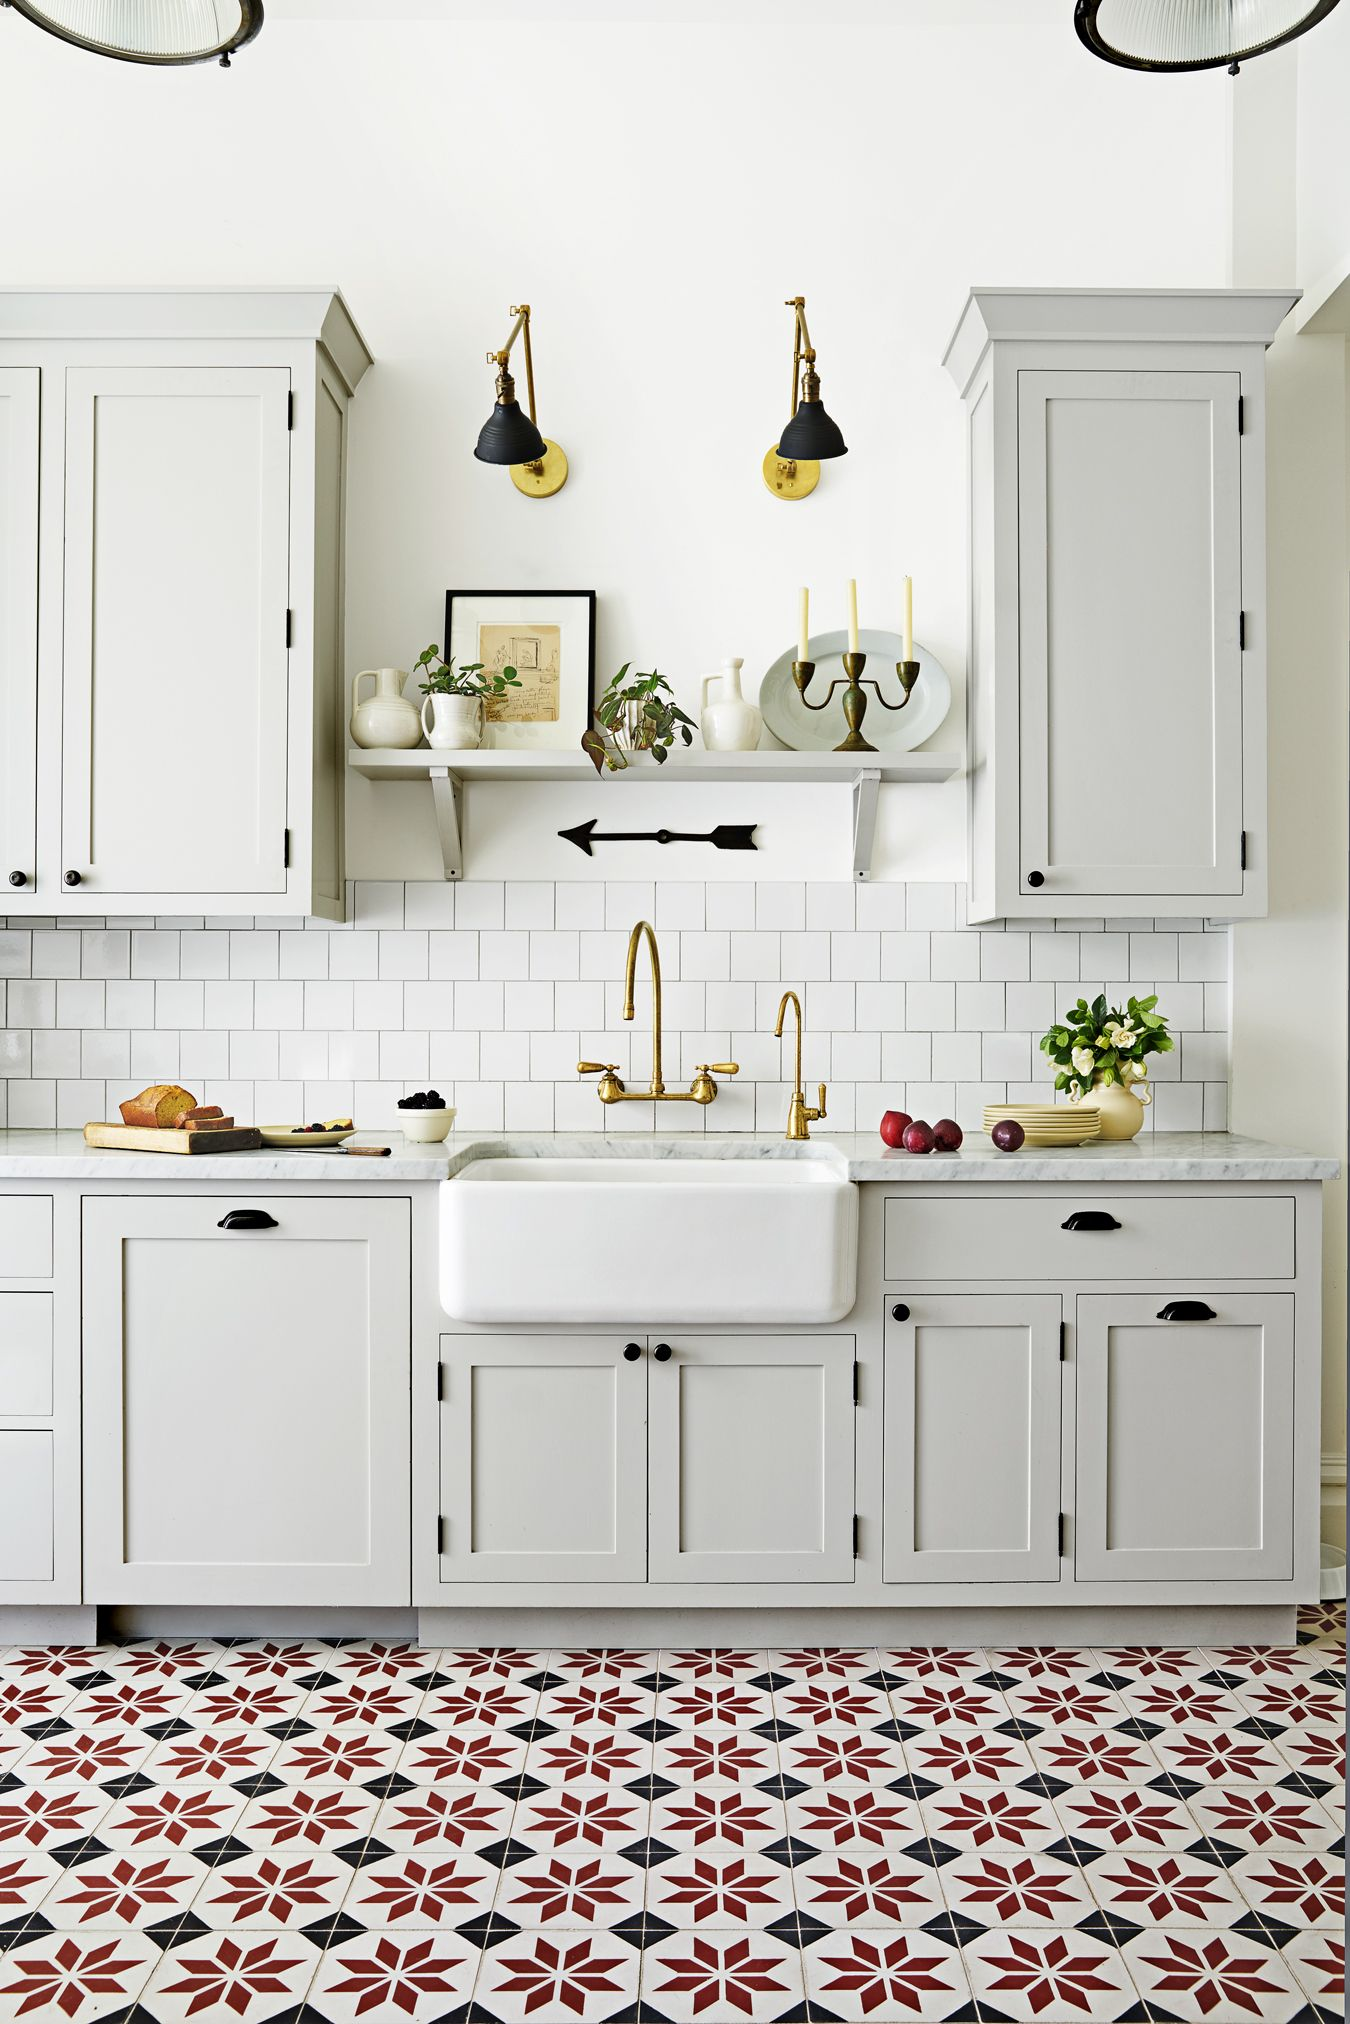 8 gorgeous kitchen trends that are going to be huge in 2018